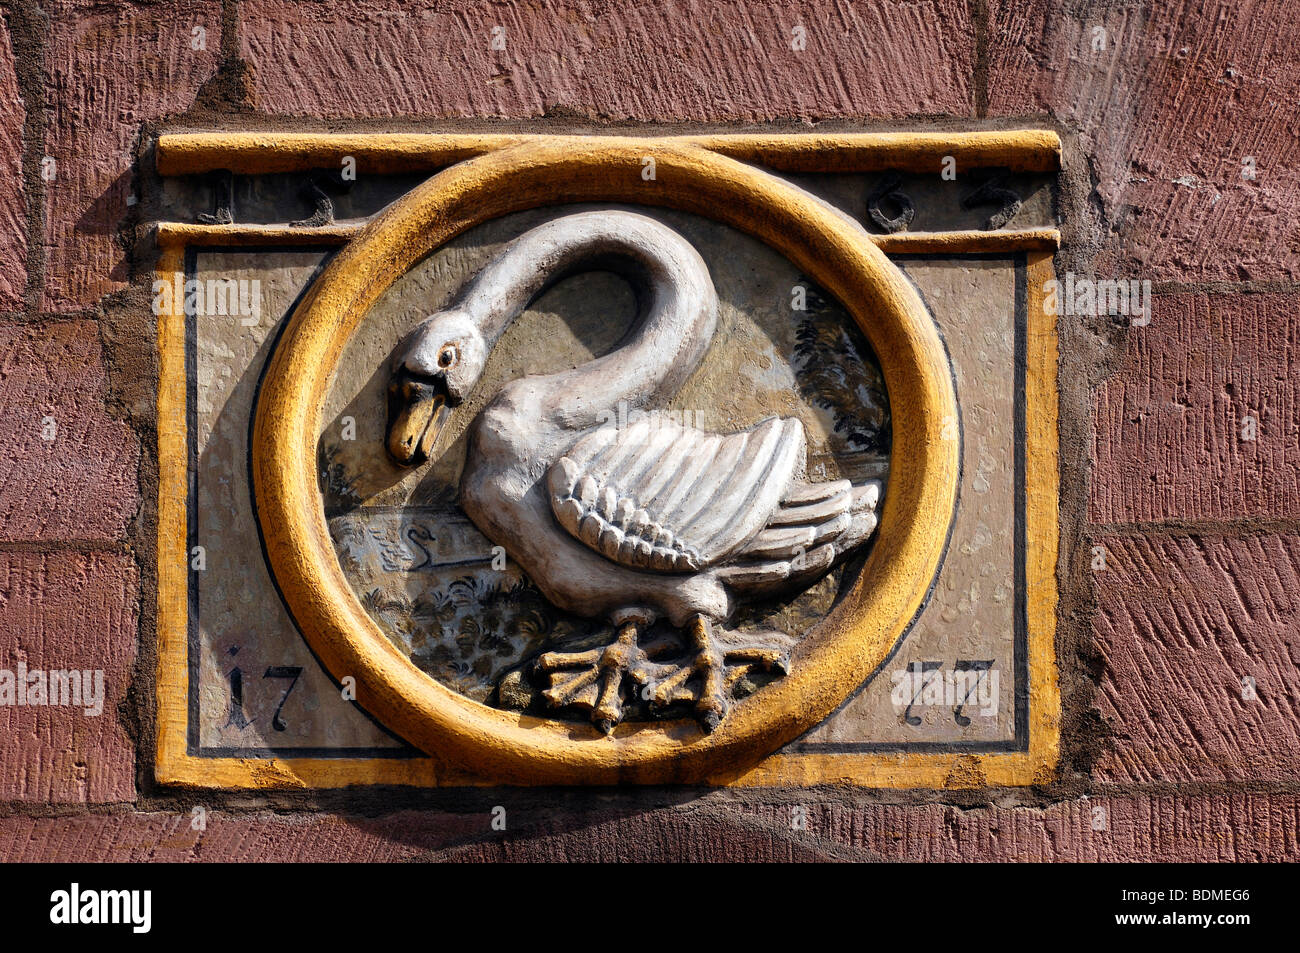 Old tavern sign 'To the White Swan' from 1777, Nuremberg, Middle Franconia, Bavaria, Germany, Europe - Stock Image